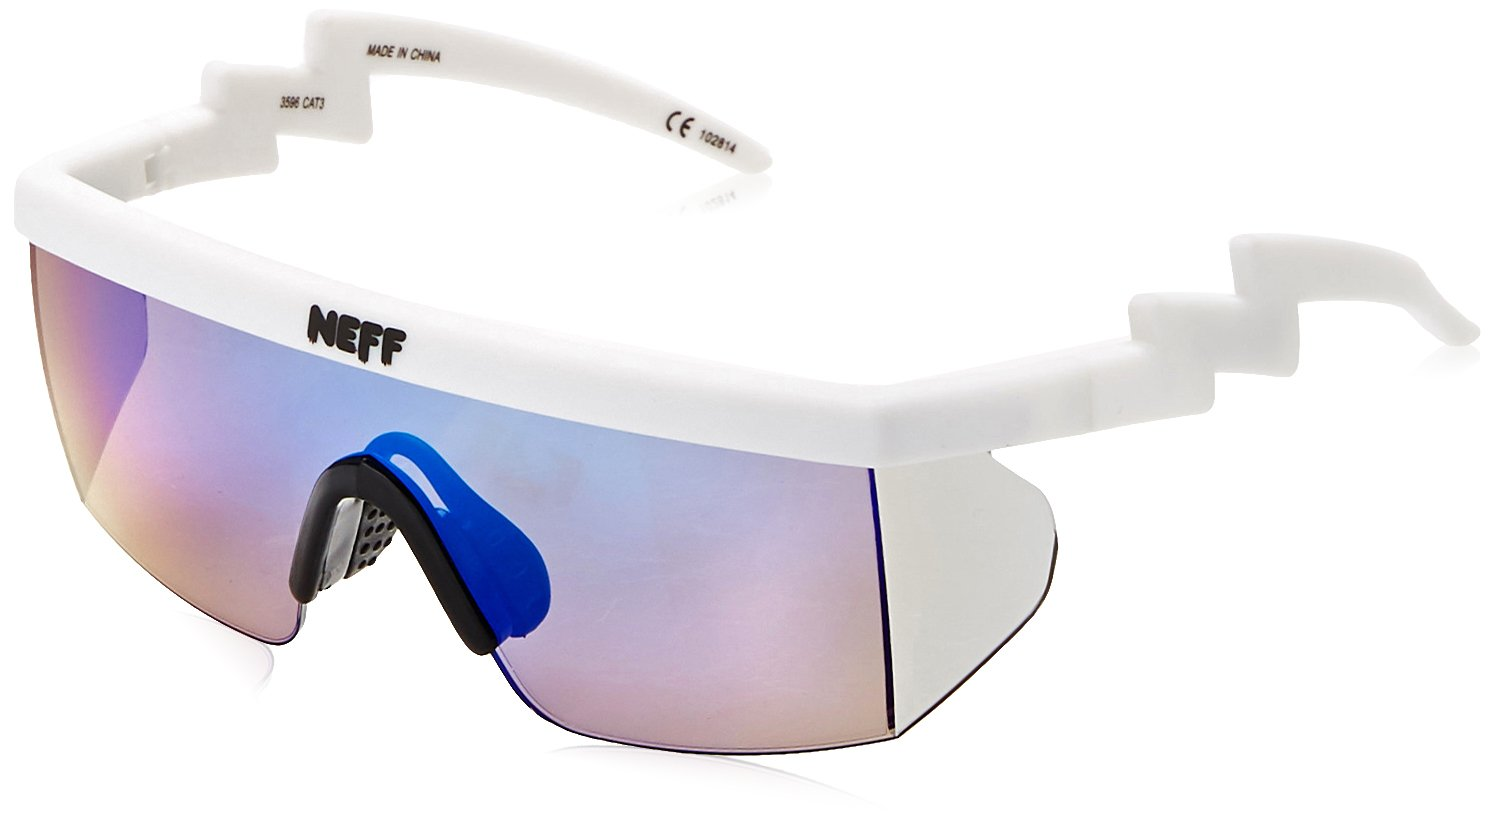 4bb5163344 Galleon - Neff Brodie Shades Rimless Sunglasses WHITE RUBBER 6 Mm